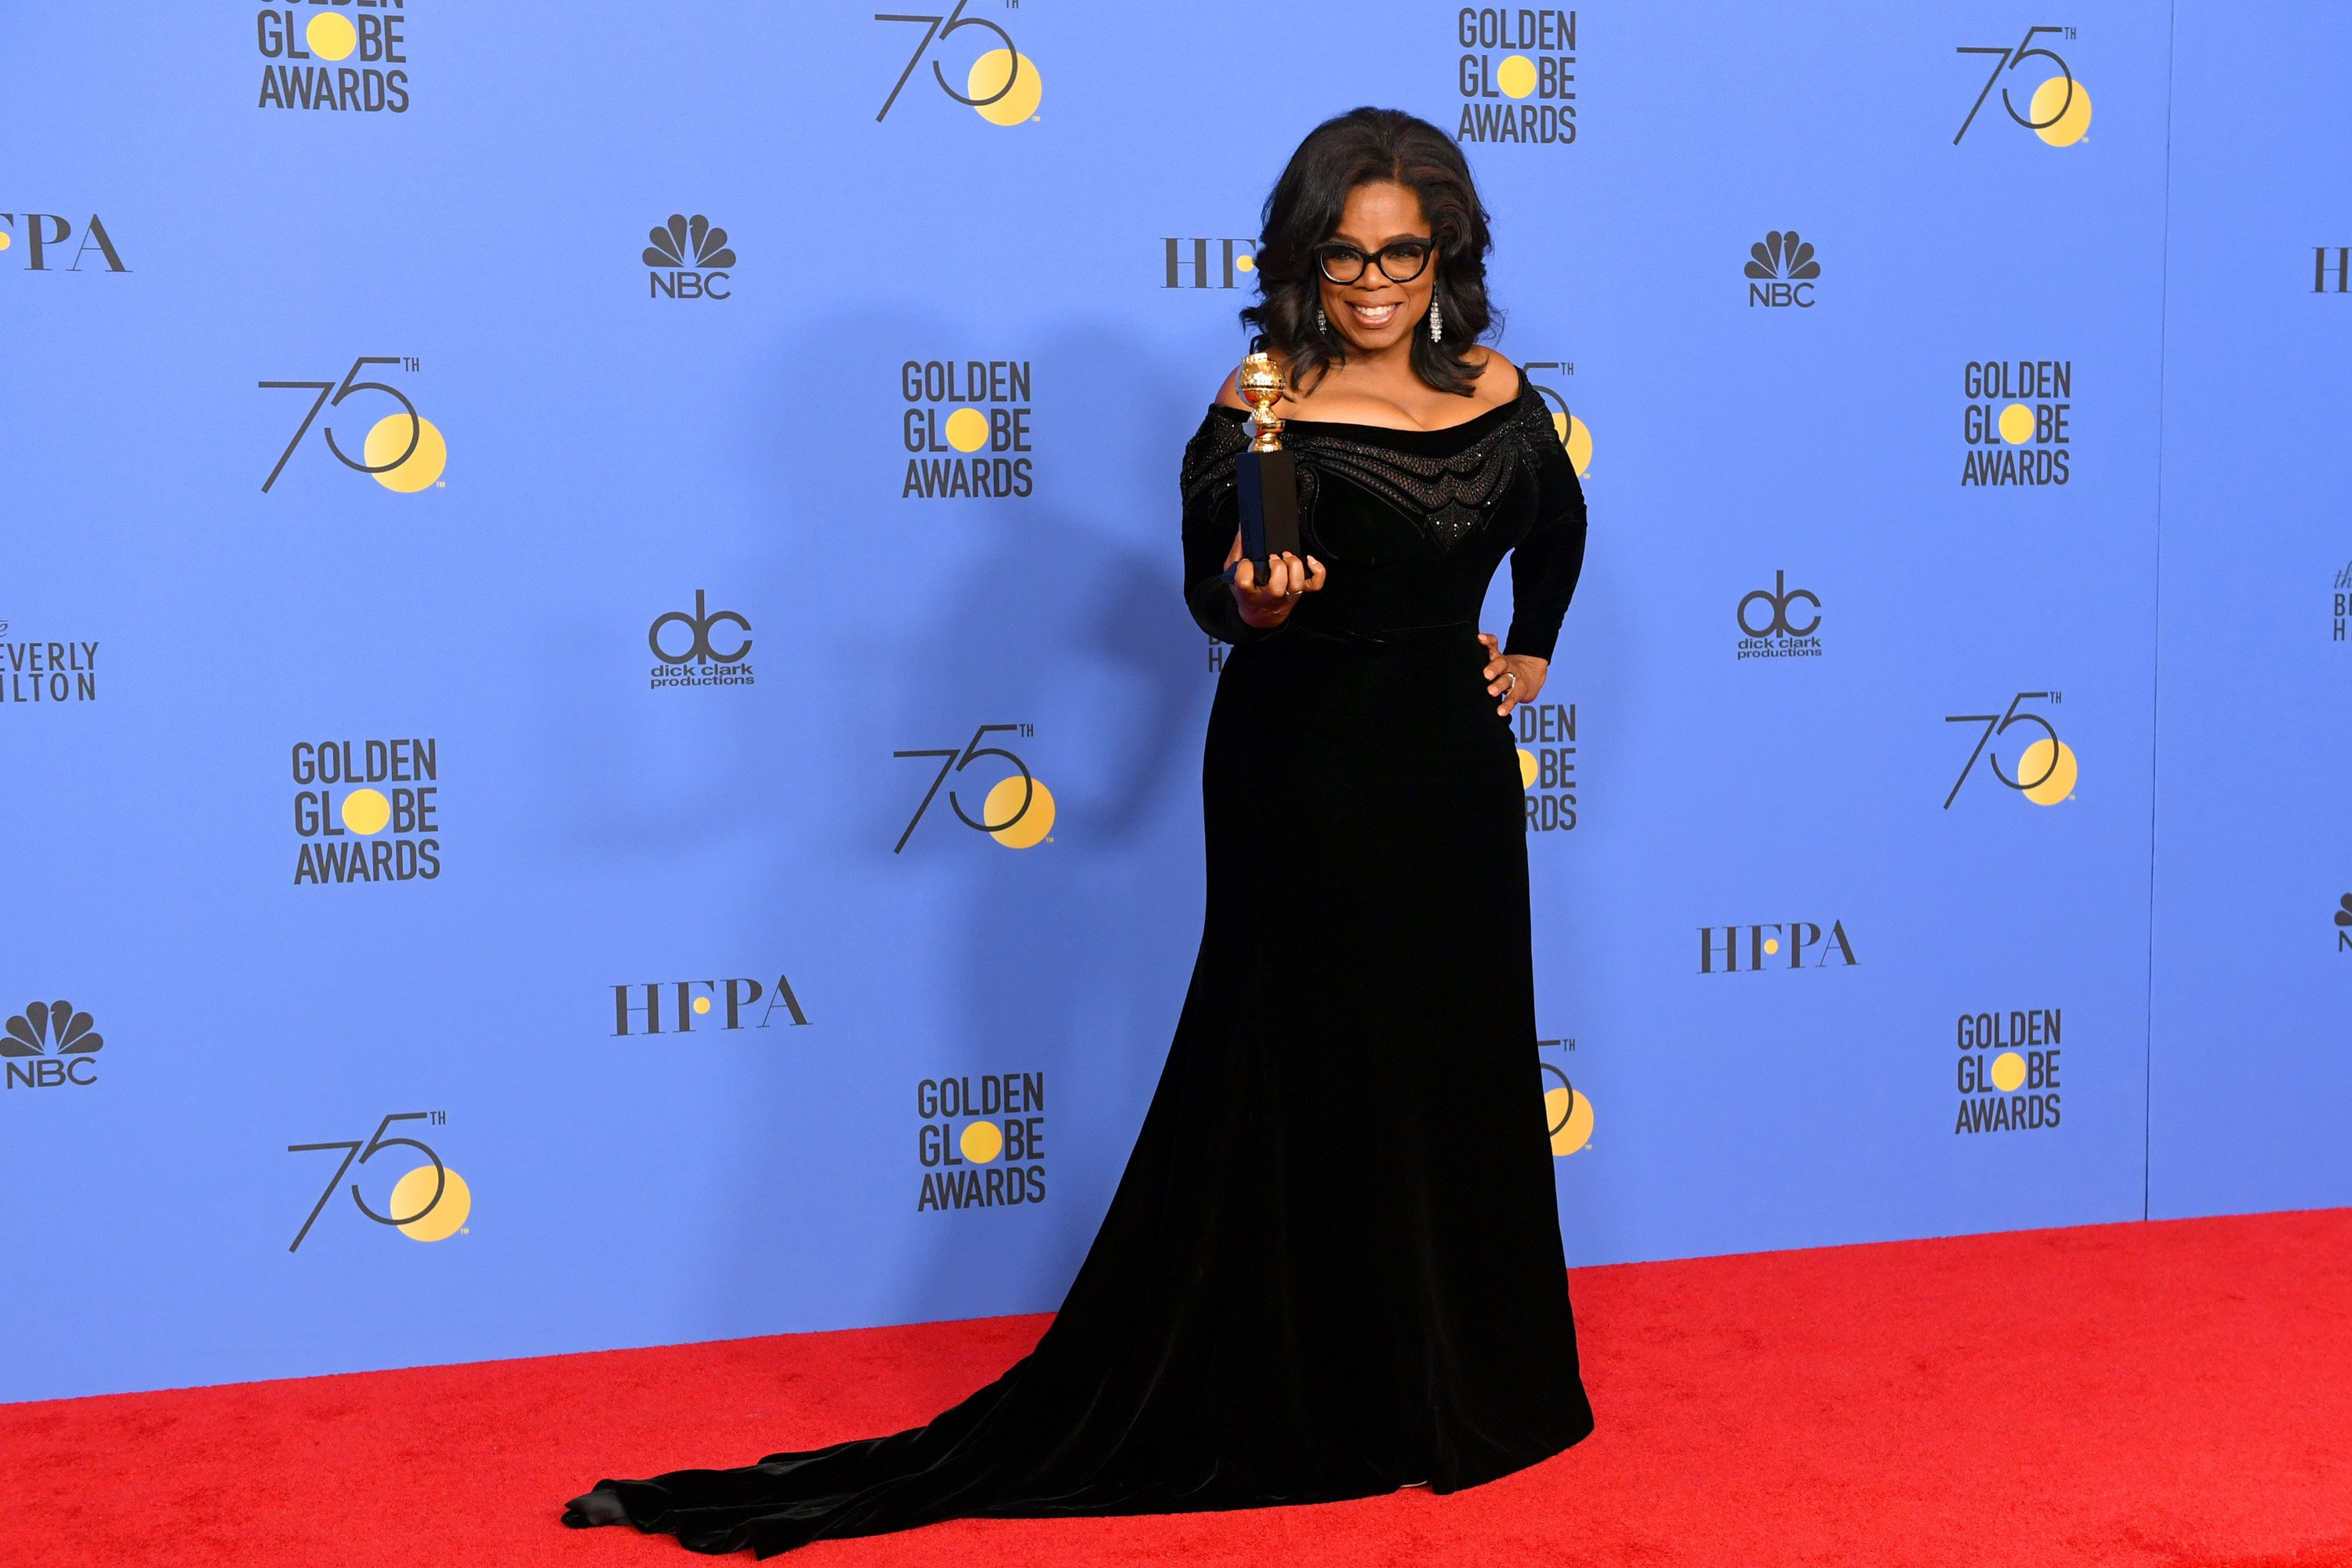 Oprah Winfrey poses with the Cecil B. DeMille Award in the press room during The 75th Annual Golden Globe Awards at The Beverly Hilton Hotel on January 7, 2018 in Beverly Hills, California.   Source: Getty Images